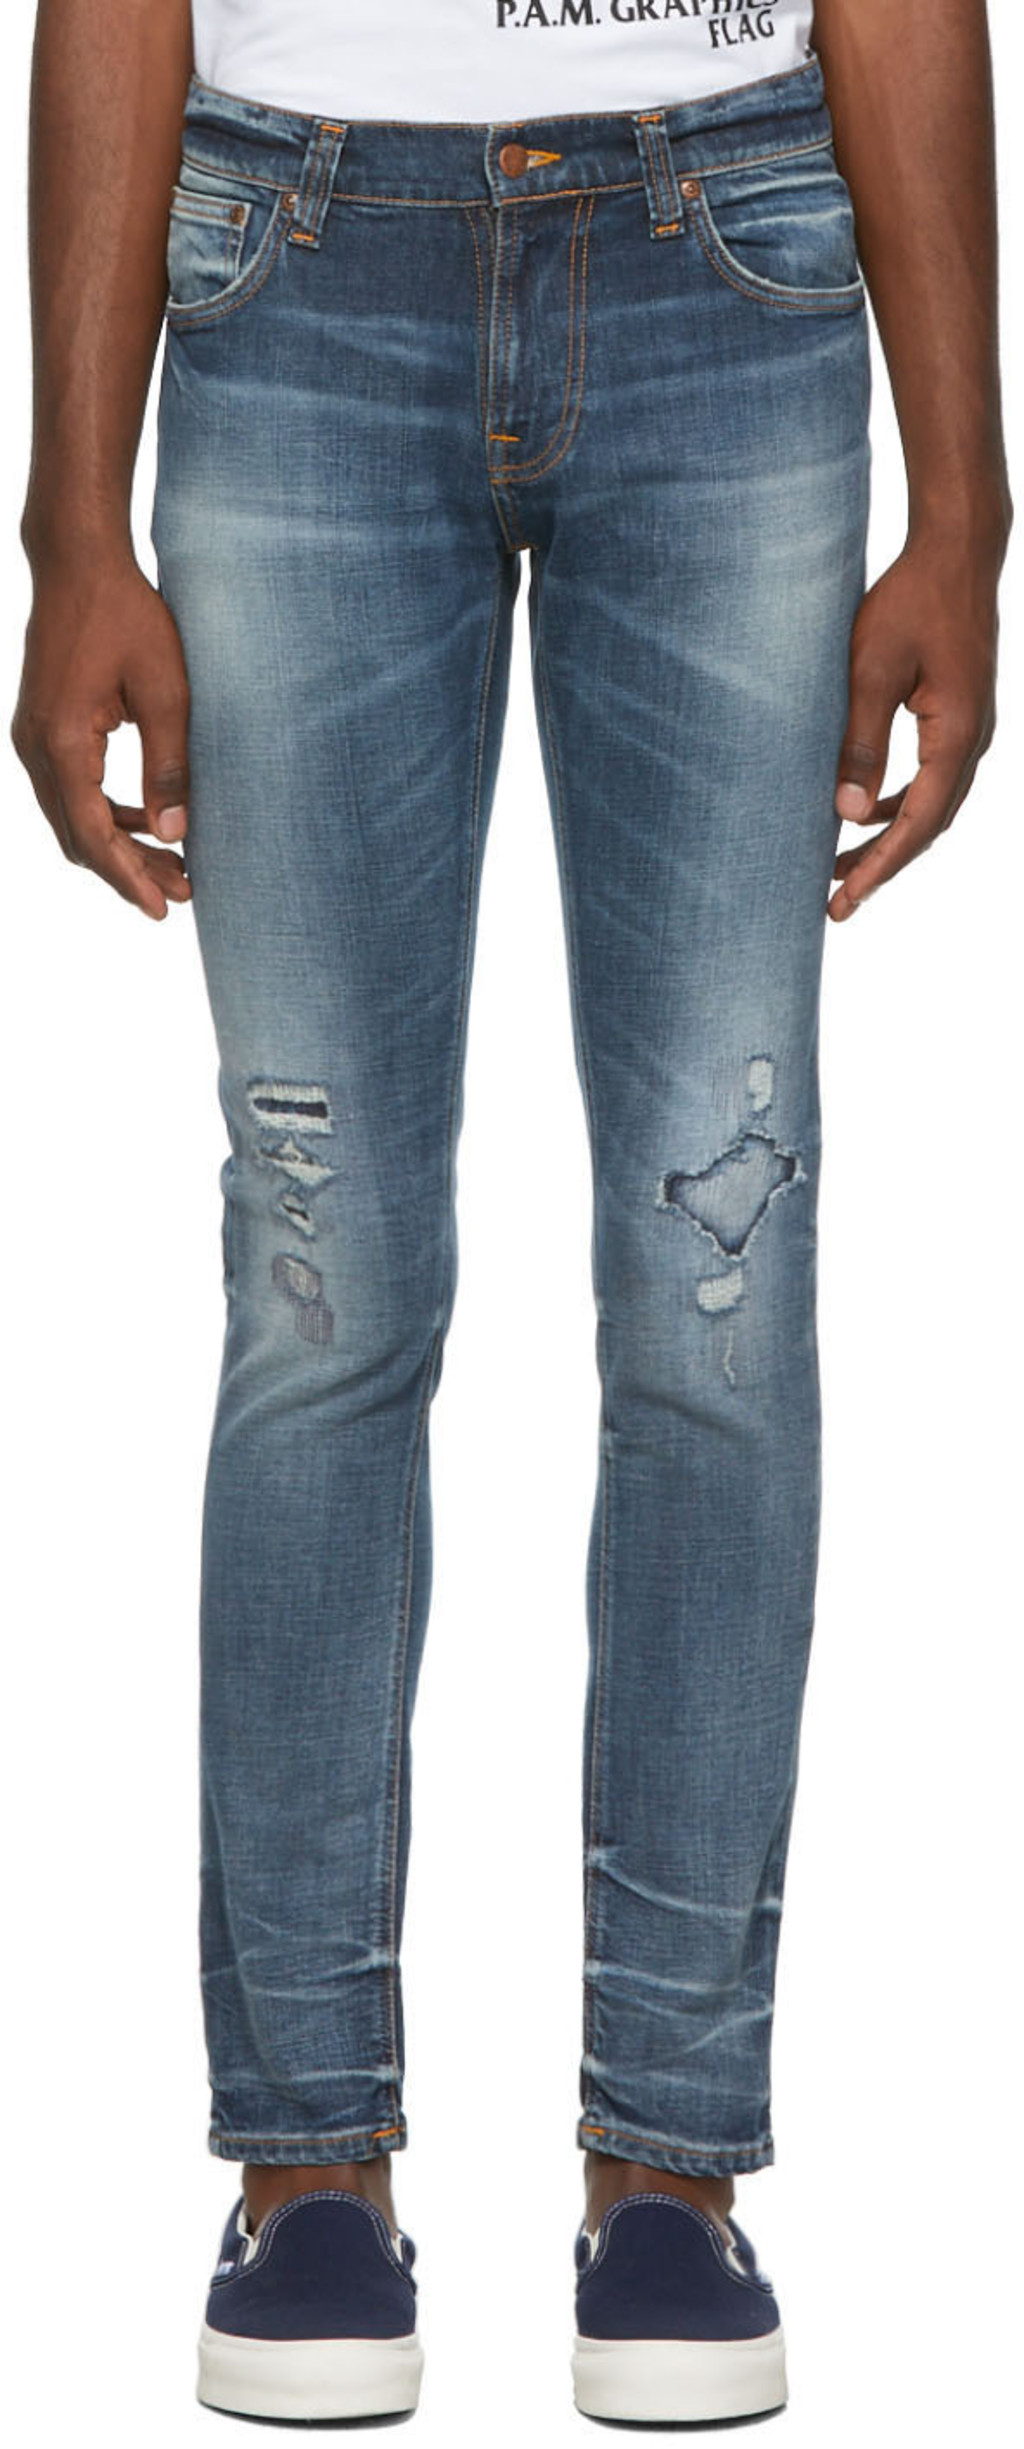 79d211d9 Blue Worn Repaired Tight Terry Jeans